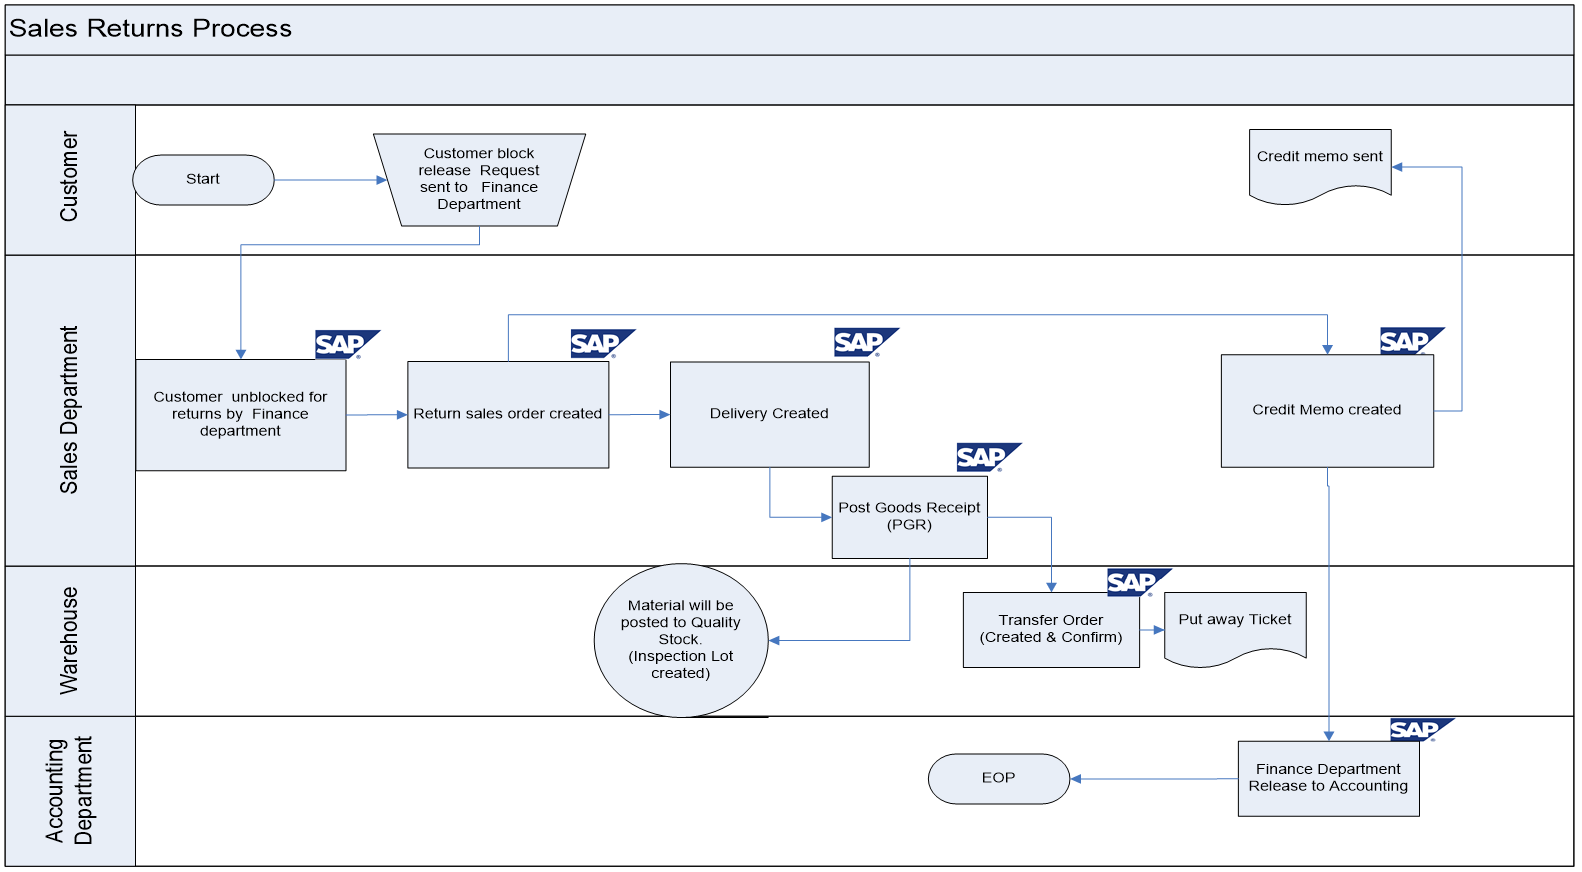 SAP SD Business Blueprint: Export Sales Return Process Scenario with